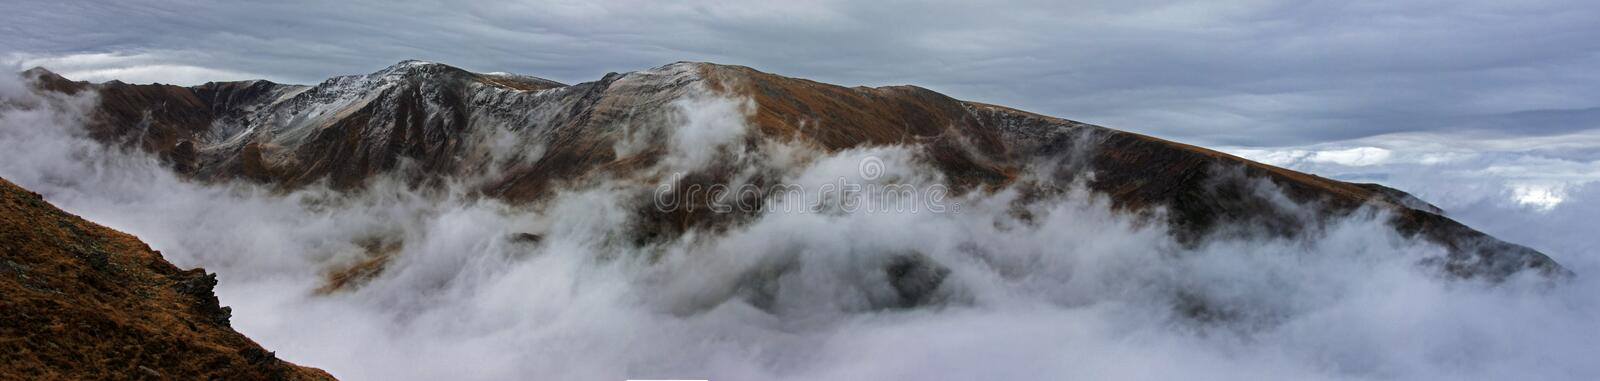 Panoramic view of a frozen mountain in Romania stock images